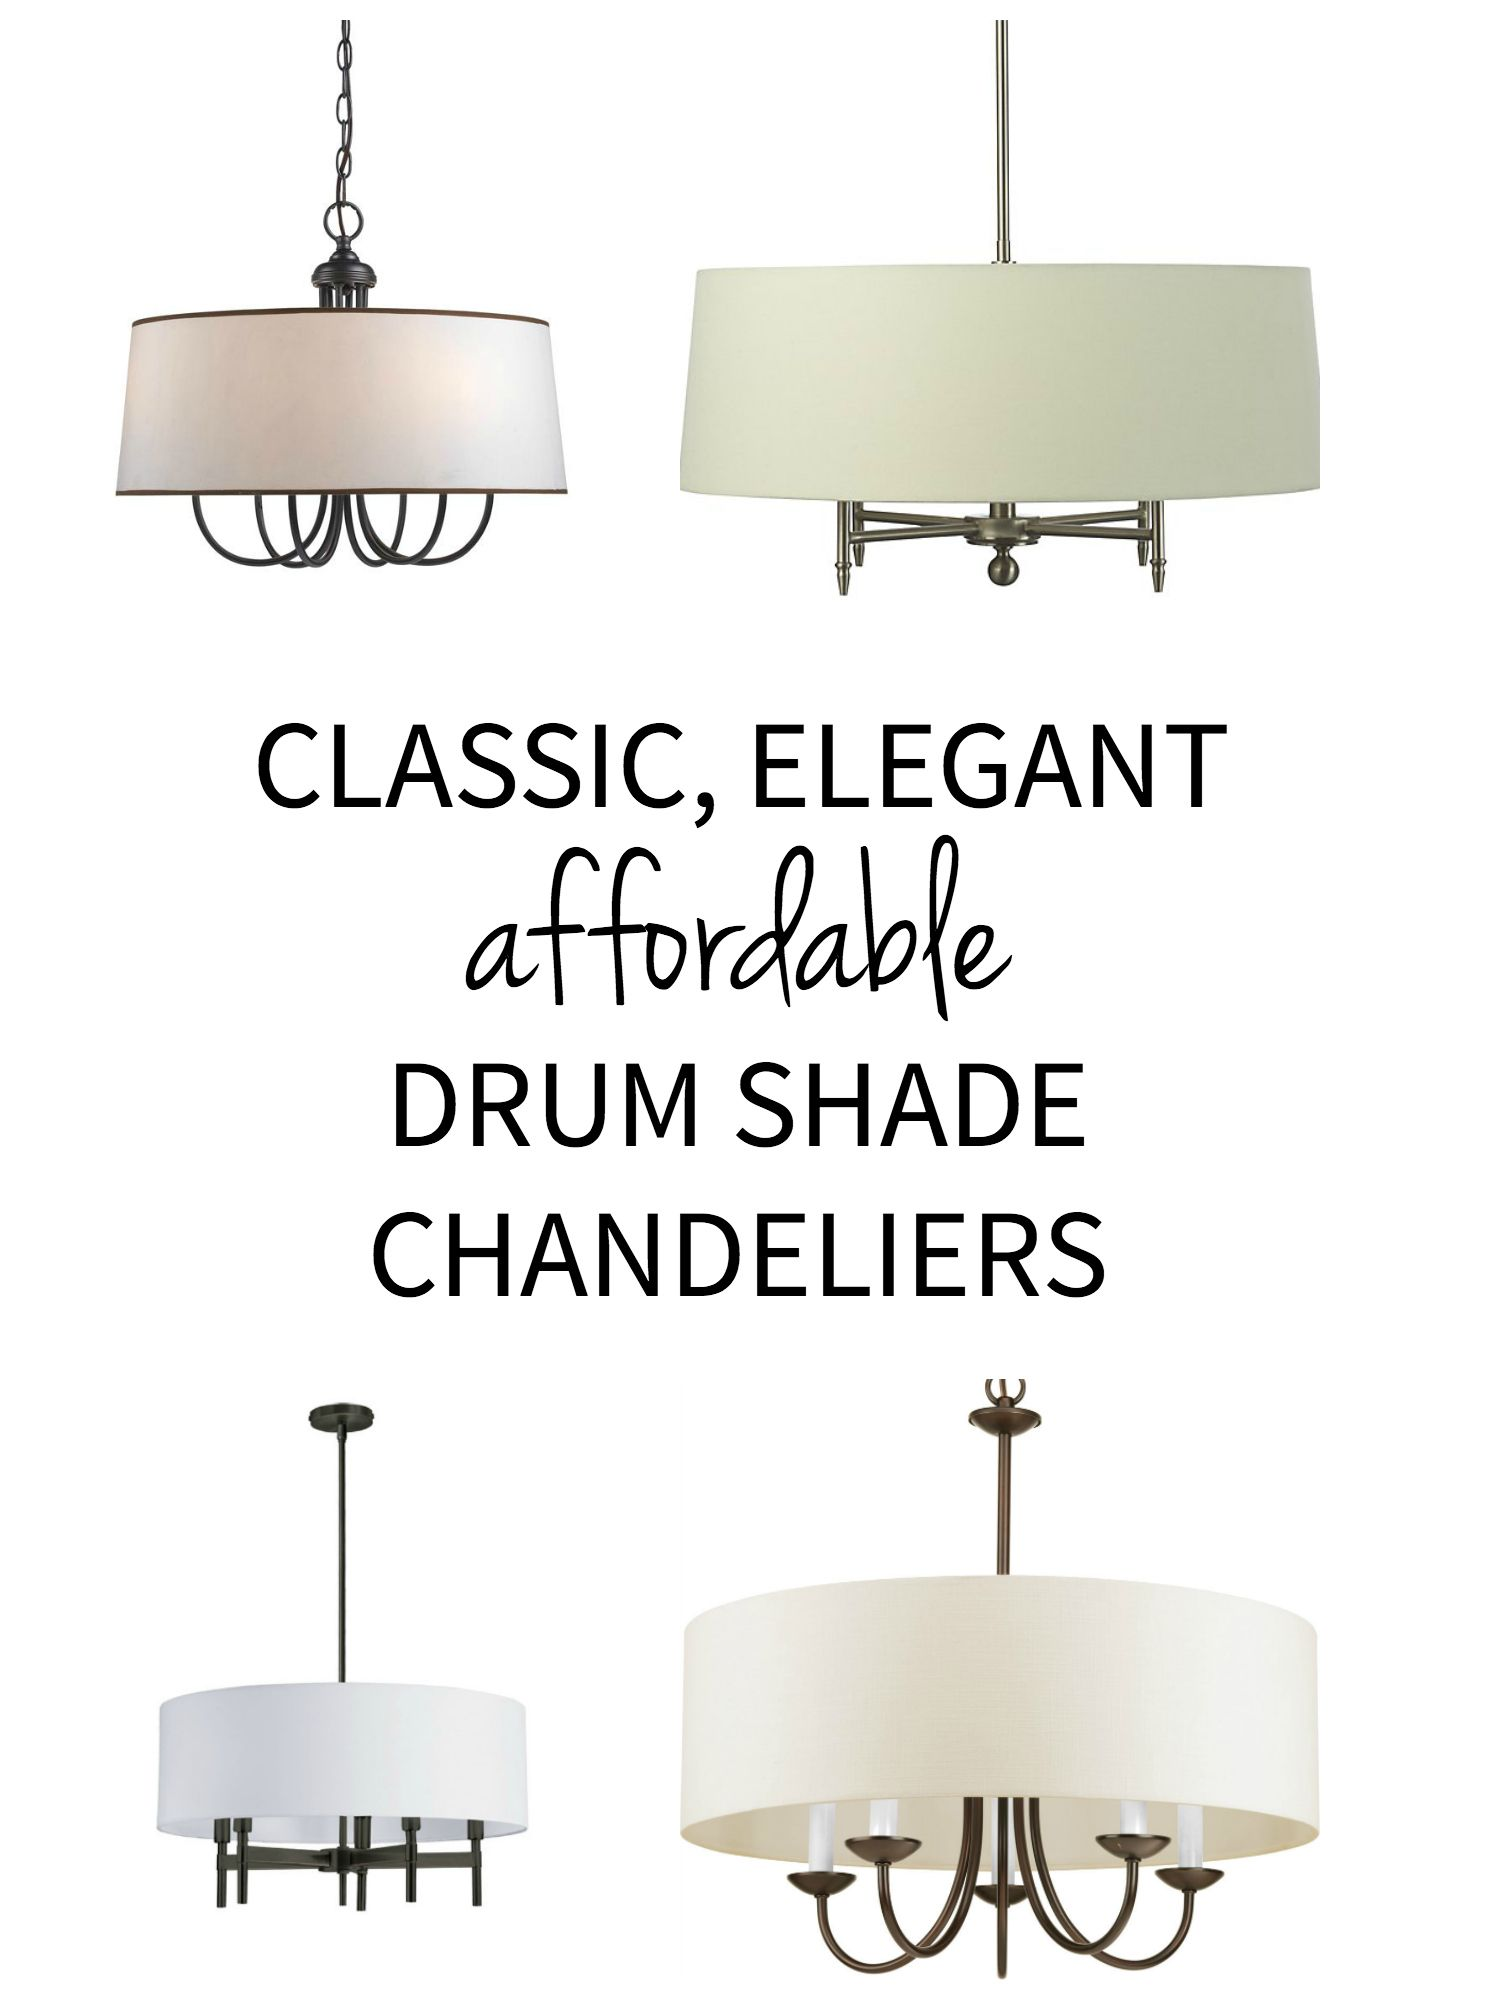 Drum shade chandelier sources drum shade chandelier drum shade classic elegant lighting drum shade chandelier pendants priced on a budget aloadofball Image collections